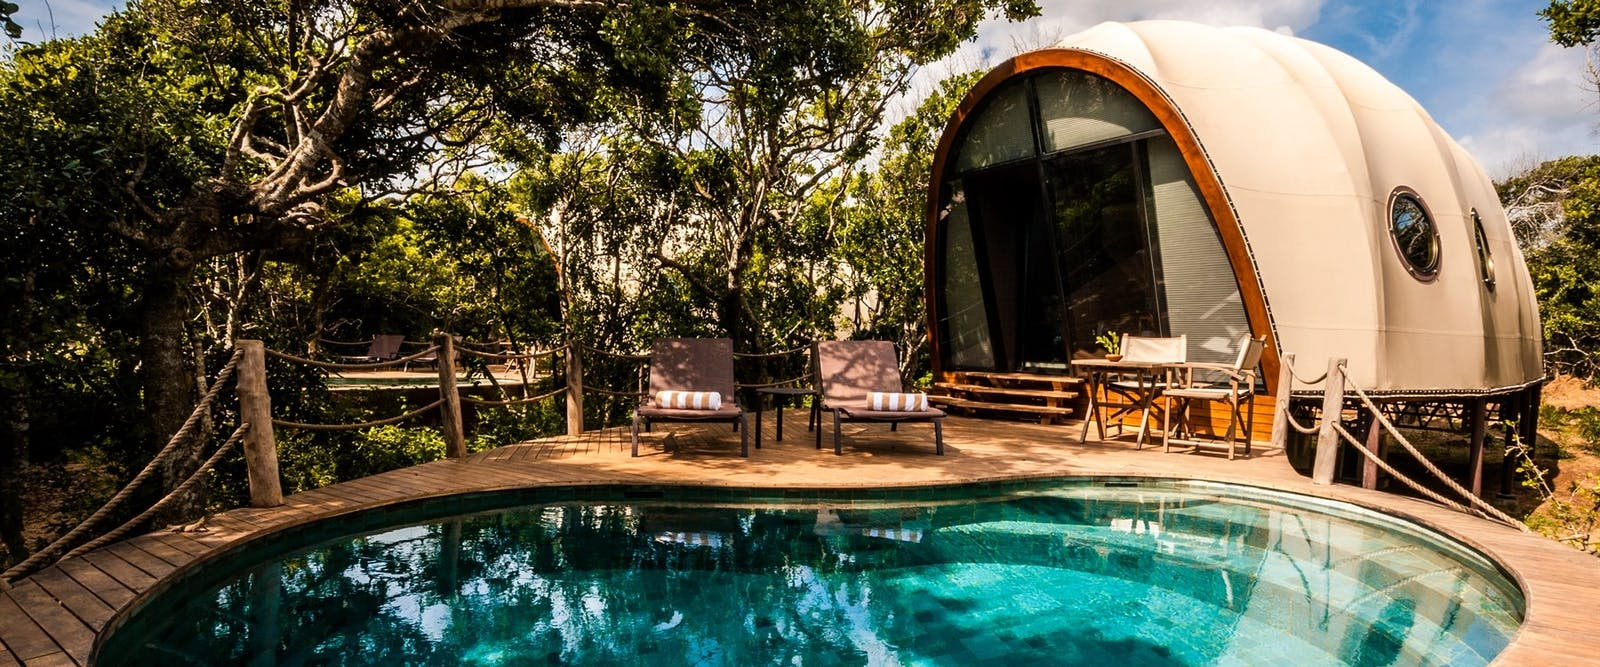 Cocoon pool at Wild Coast Tented Lodge, Yala National Park